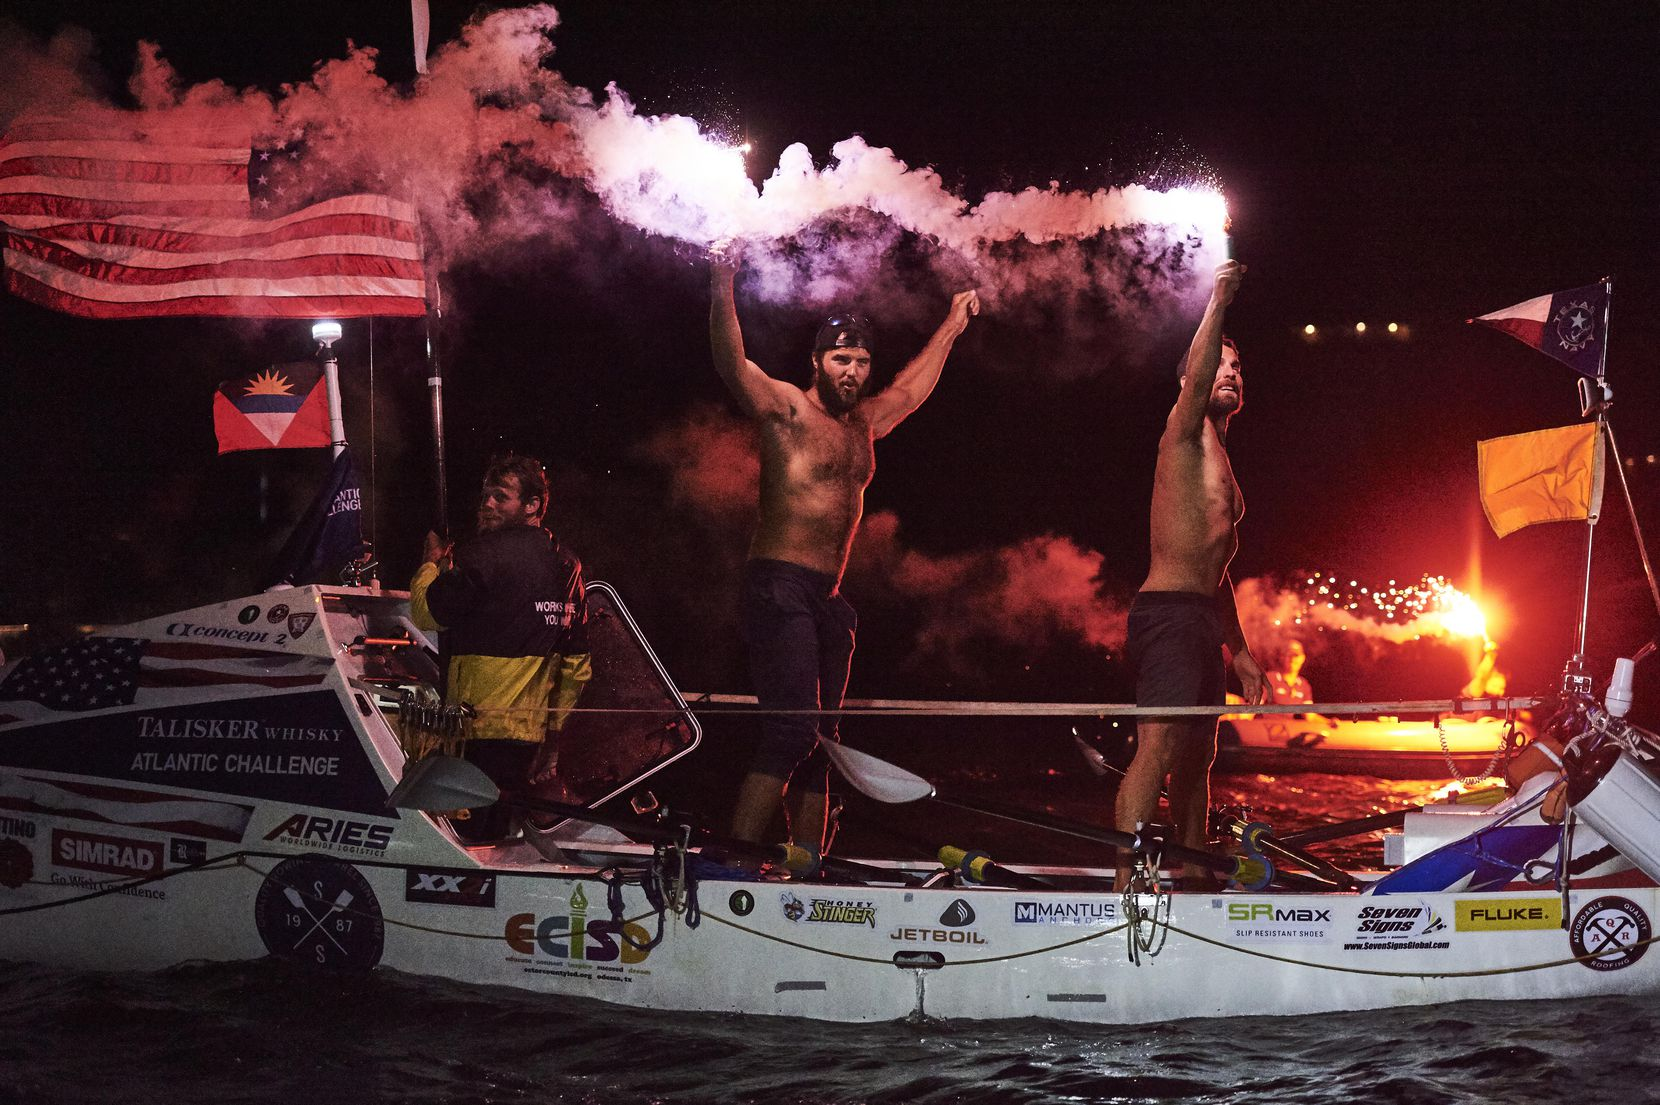 After their history-making row across the Atlantic Ocean, the team members fired flares in celebration as they reached Nelson's Dockyard English Harbor, about 300 miles east of Puerto Rico. From left are Matson, Krauskopf and Alviar.